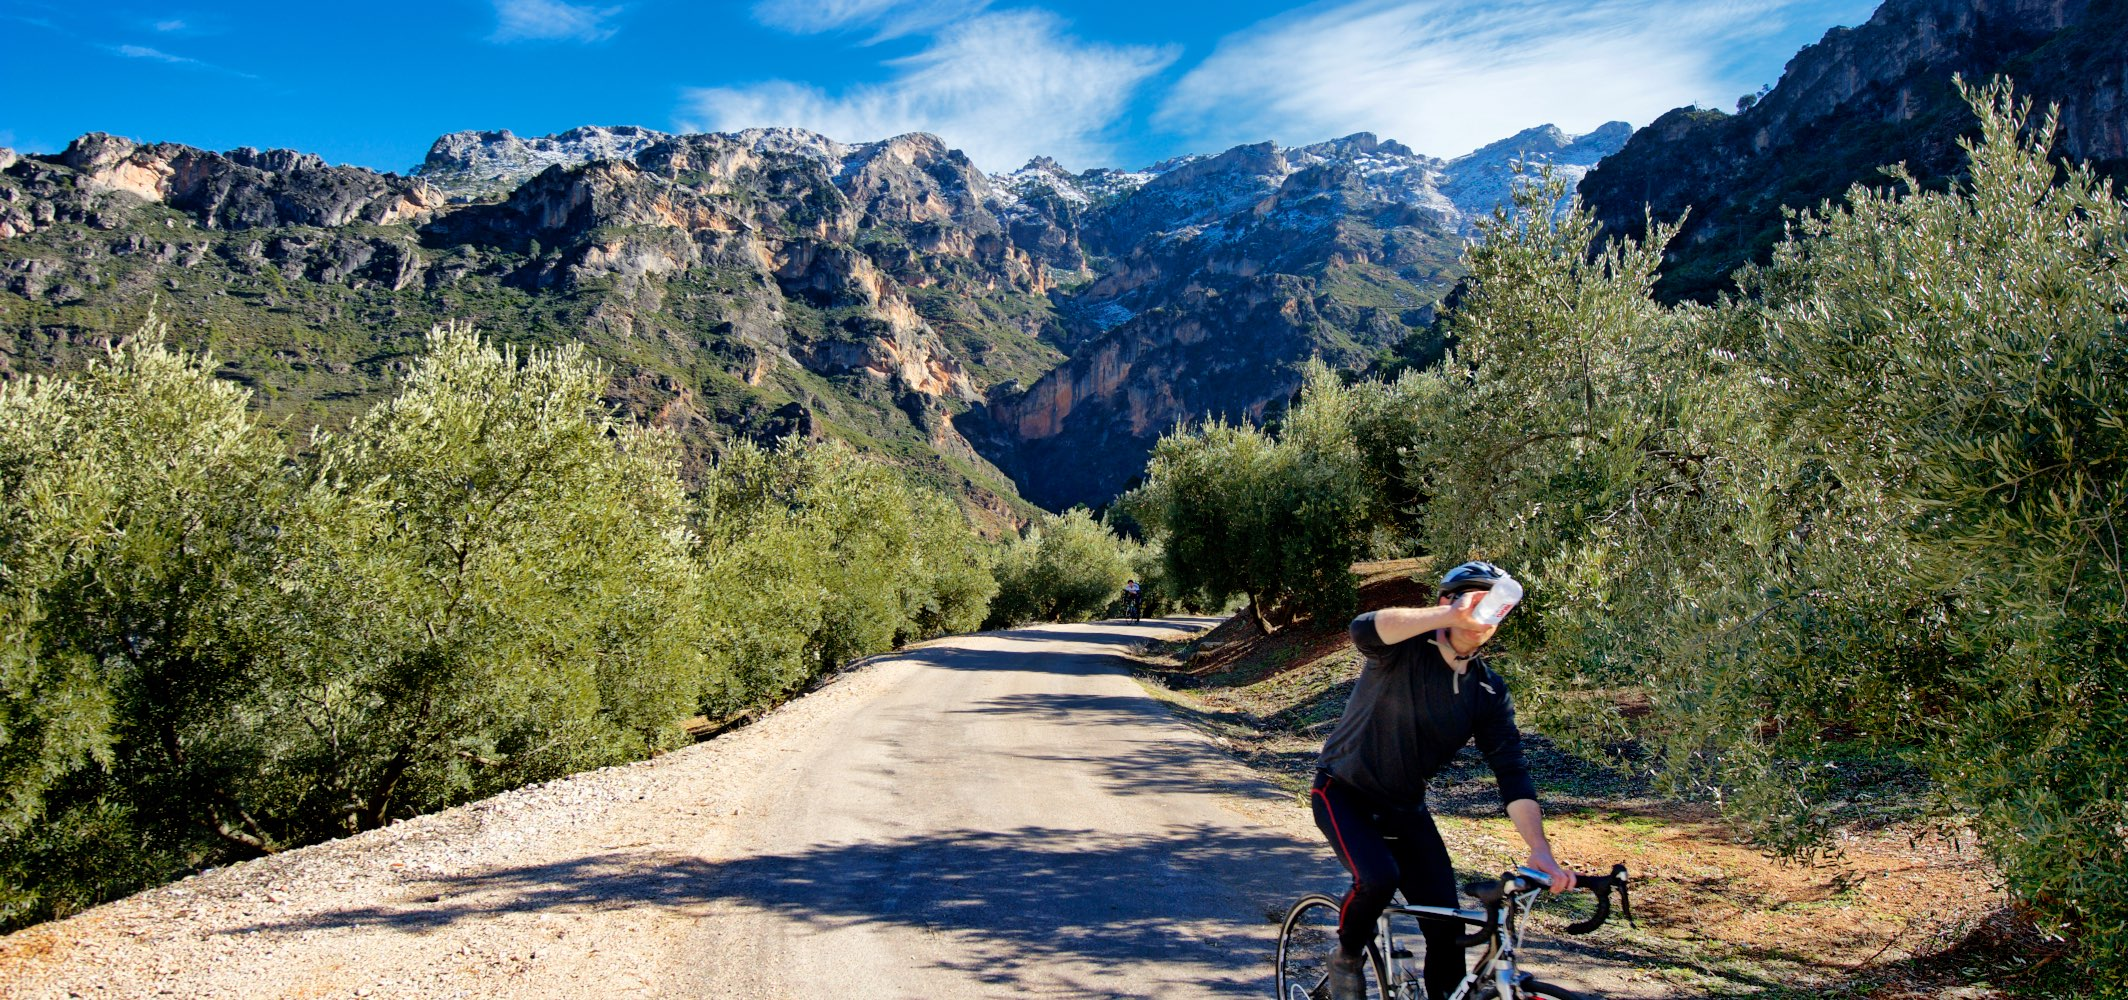 Great Cycling Climbs of Andalucia - Agua de los Perros - The Water Dogs